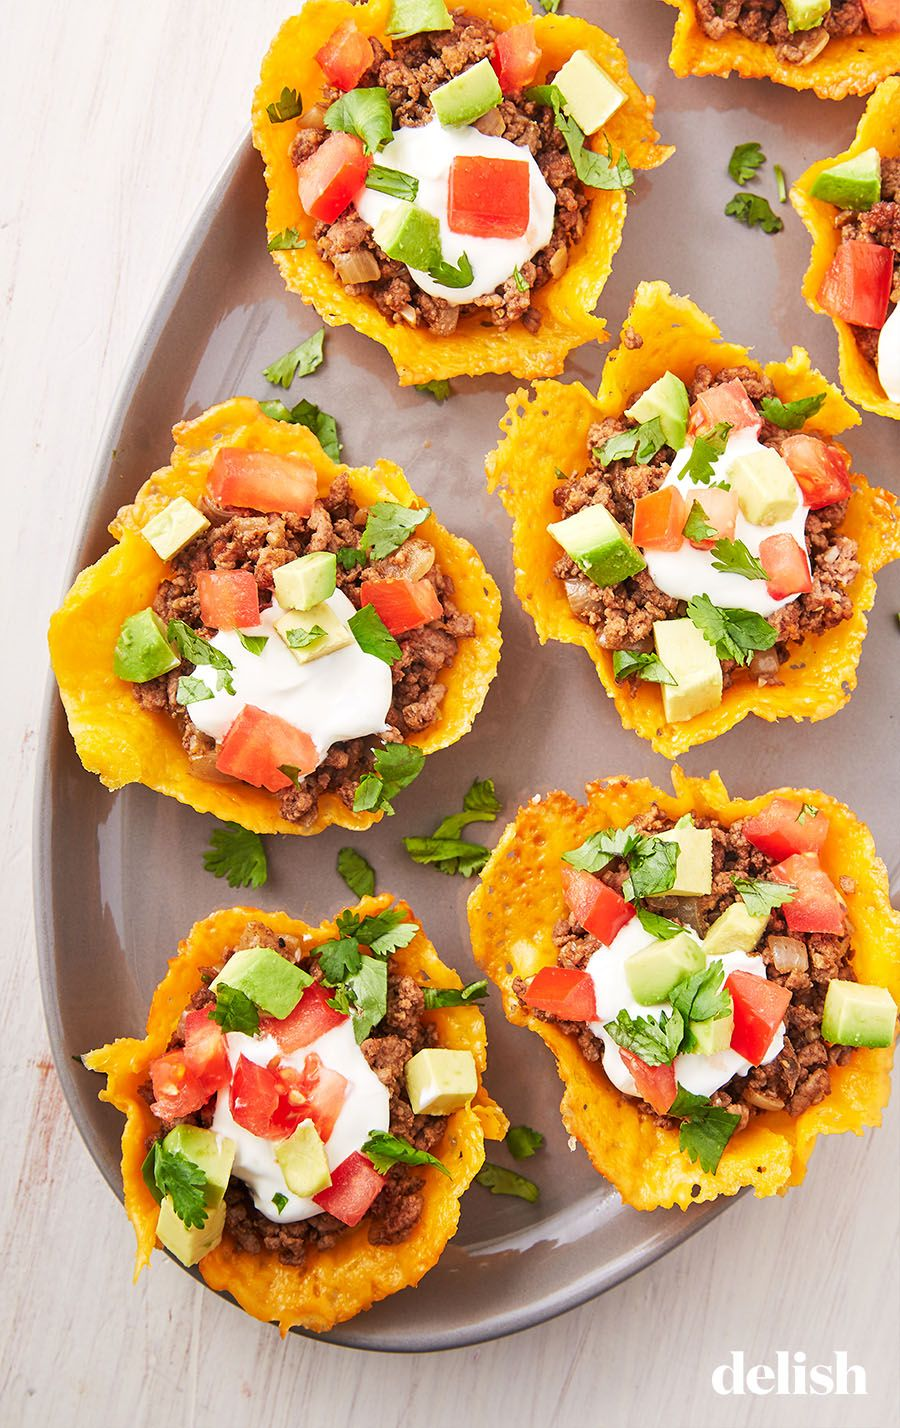 20 Best Keto Lunches To Make Easy Low Carb Keto Lunch Ideas